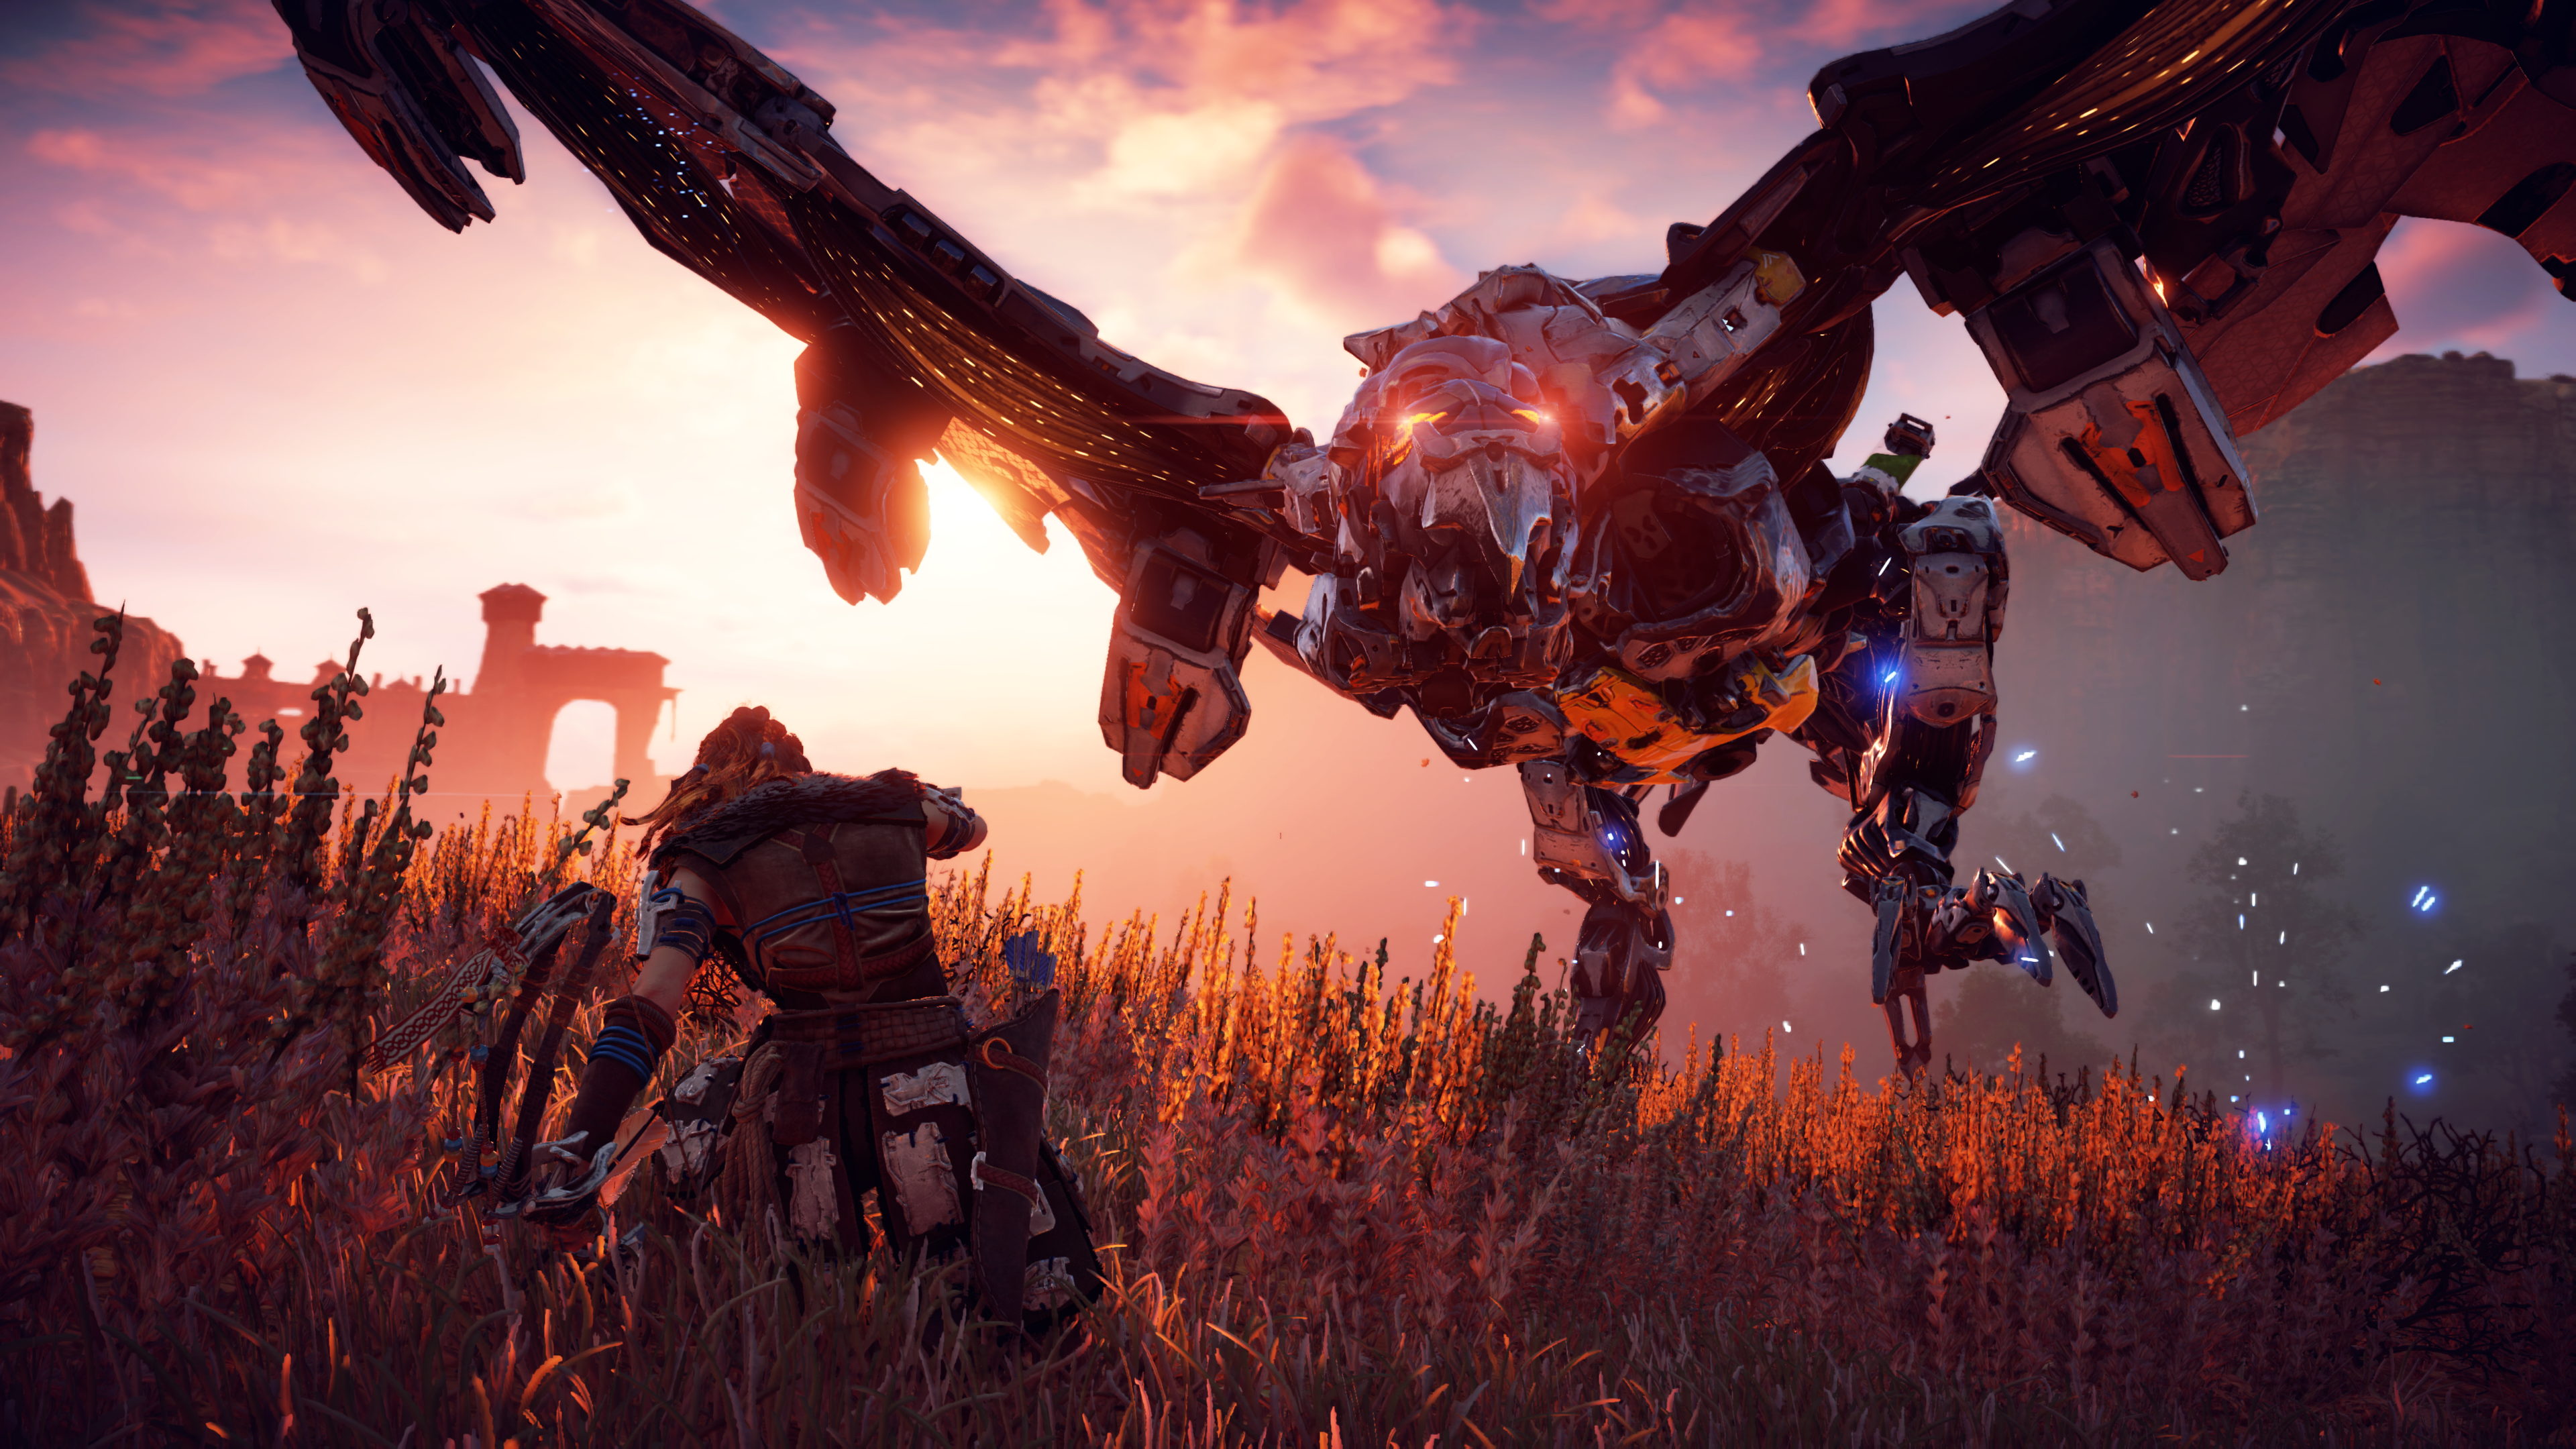 Arguably The Best Shot I Have From Horizon Zero Dawn. It